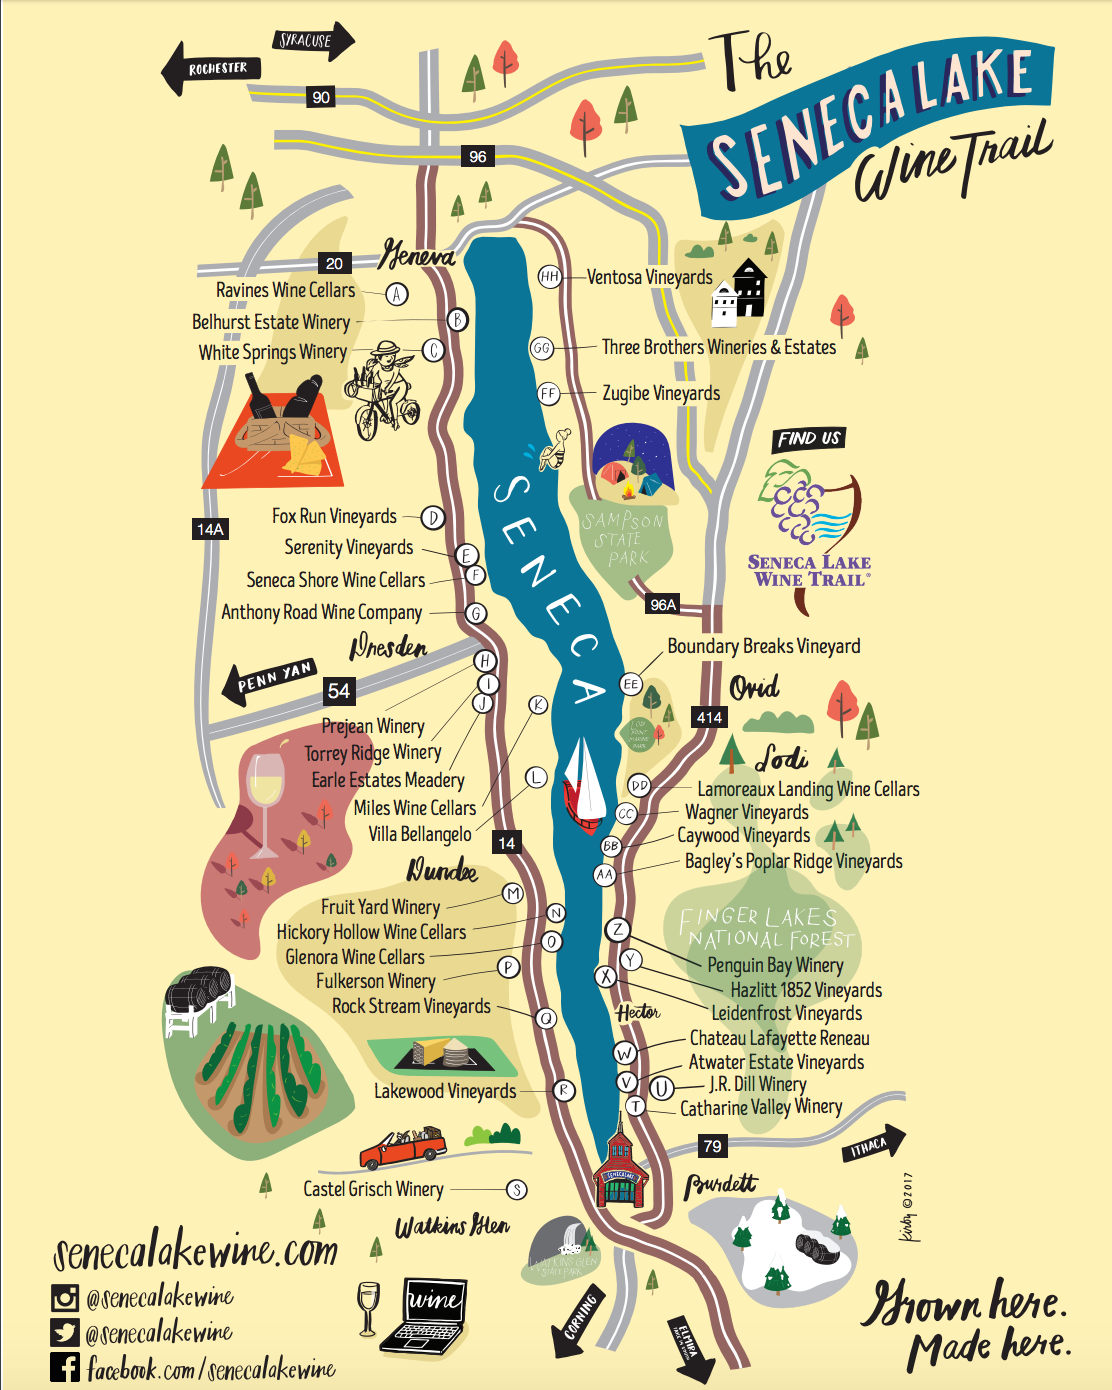 finger lakes wine map Wine Tours Rochester Limo Bus Wine Tours And Winery Tours finger lakes wine map